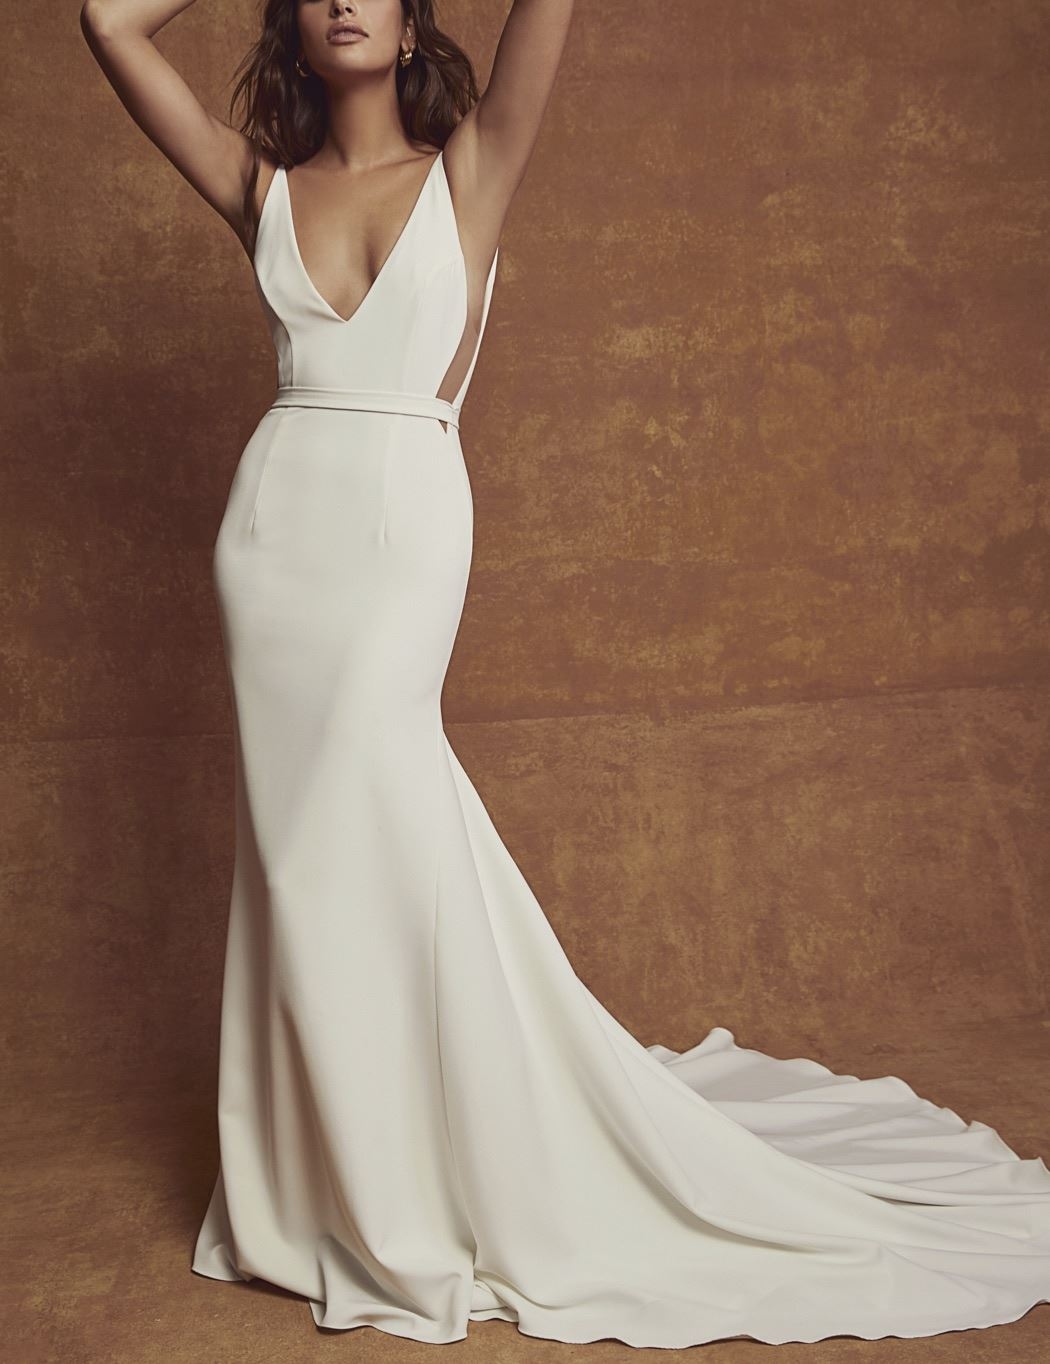 2021 Wedding Dress Trends with Ivy Kaplin from Lovely Bride Philly   www.thestylesbride.com